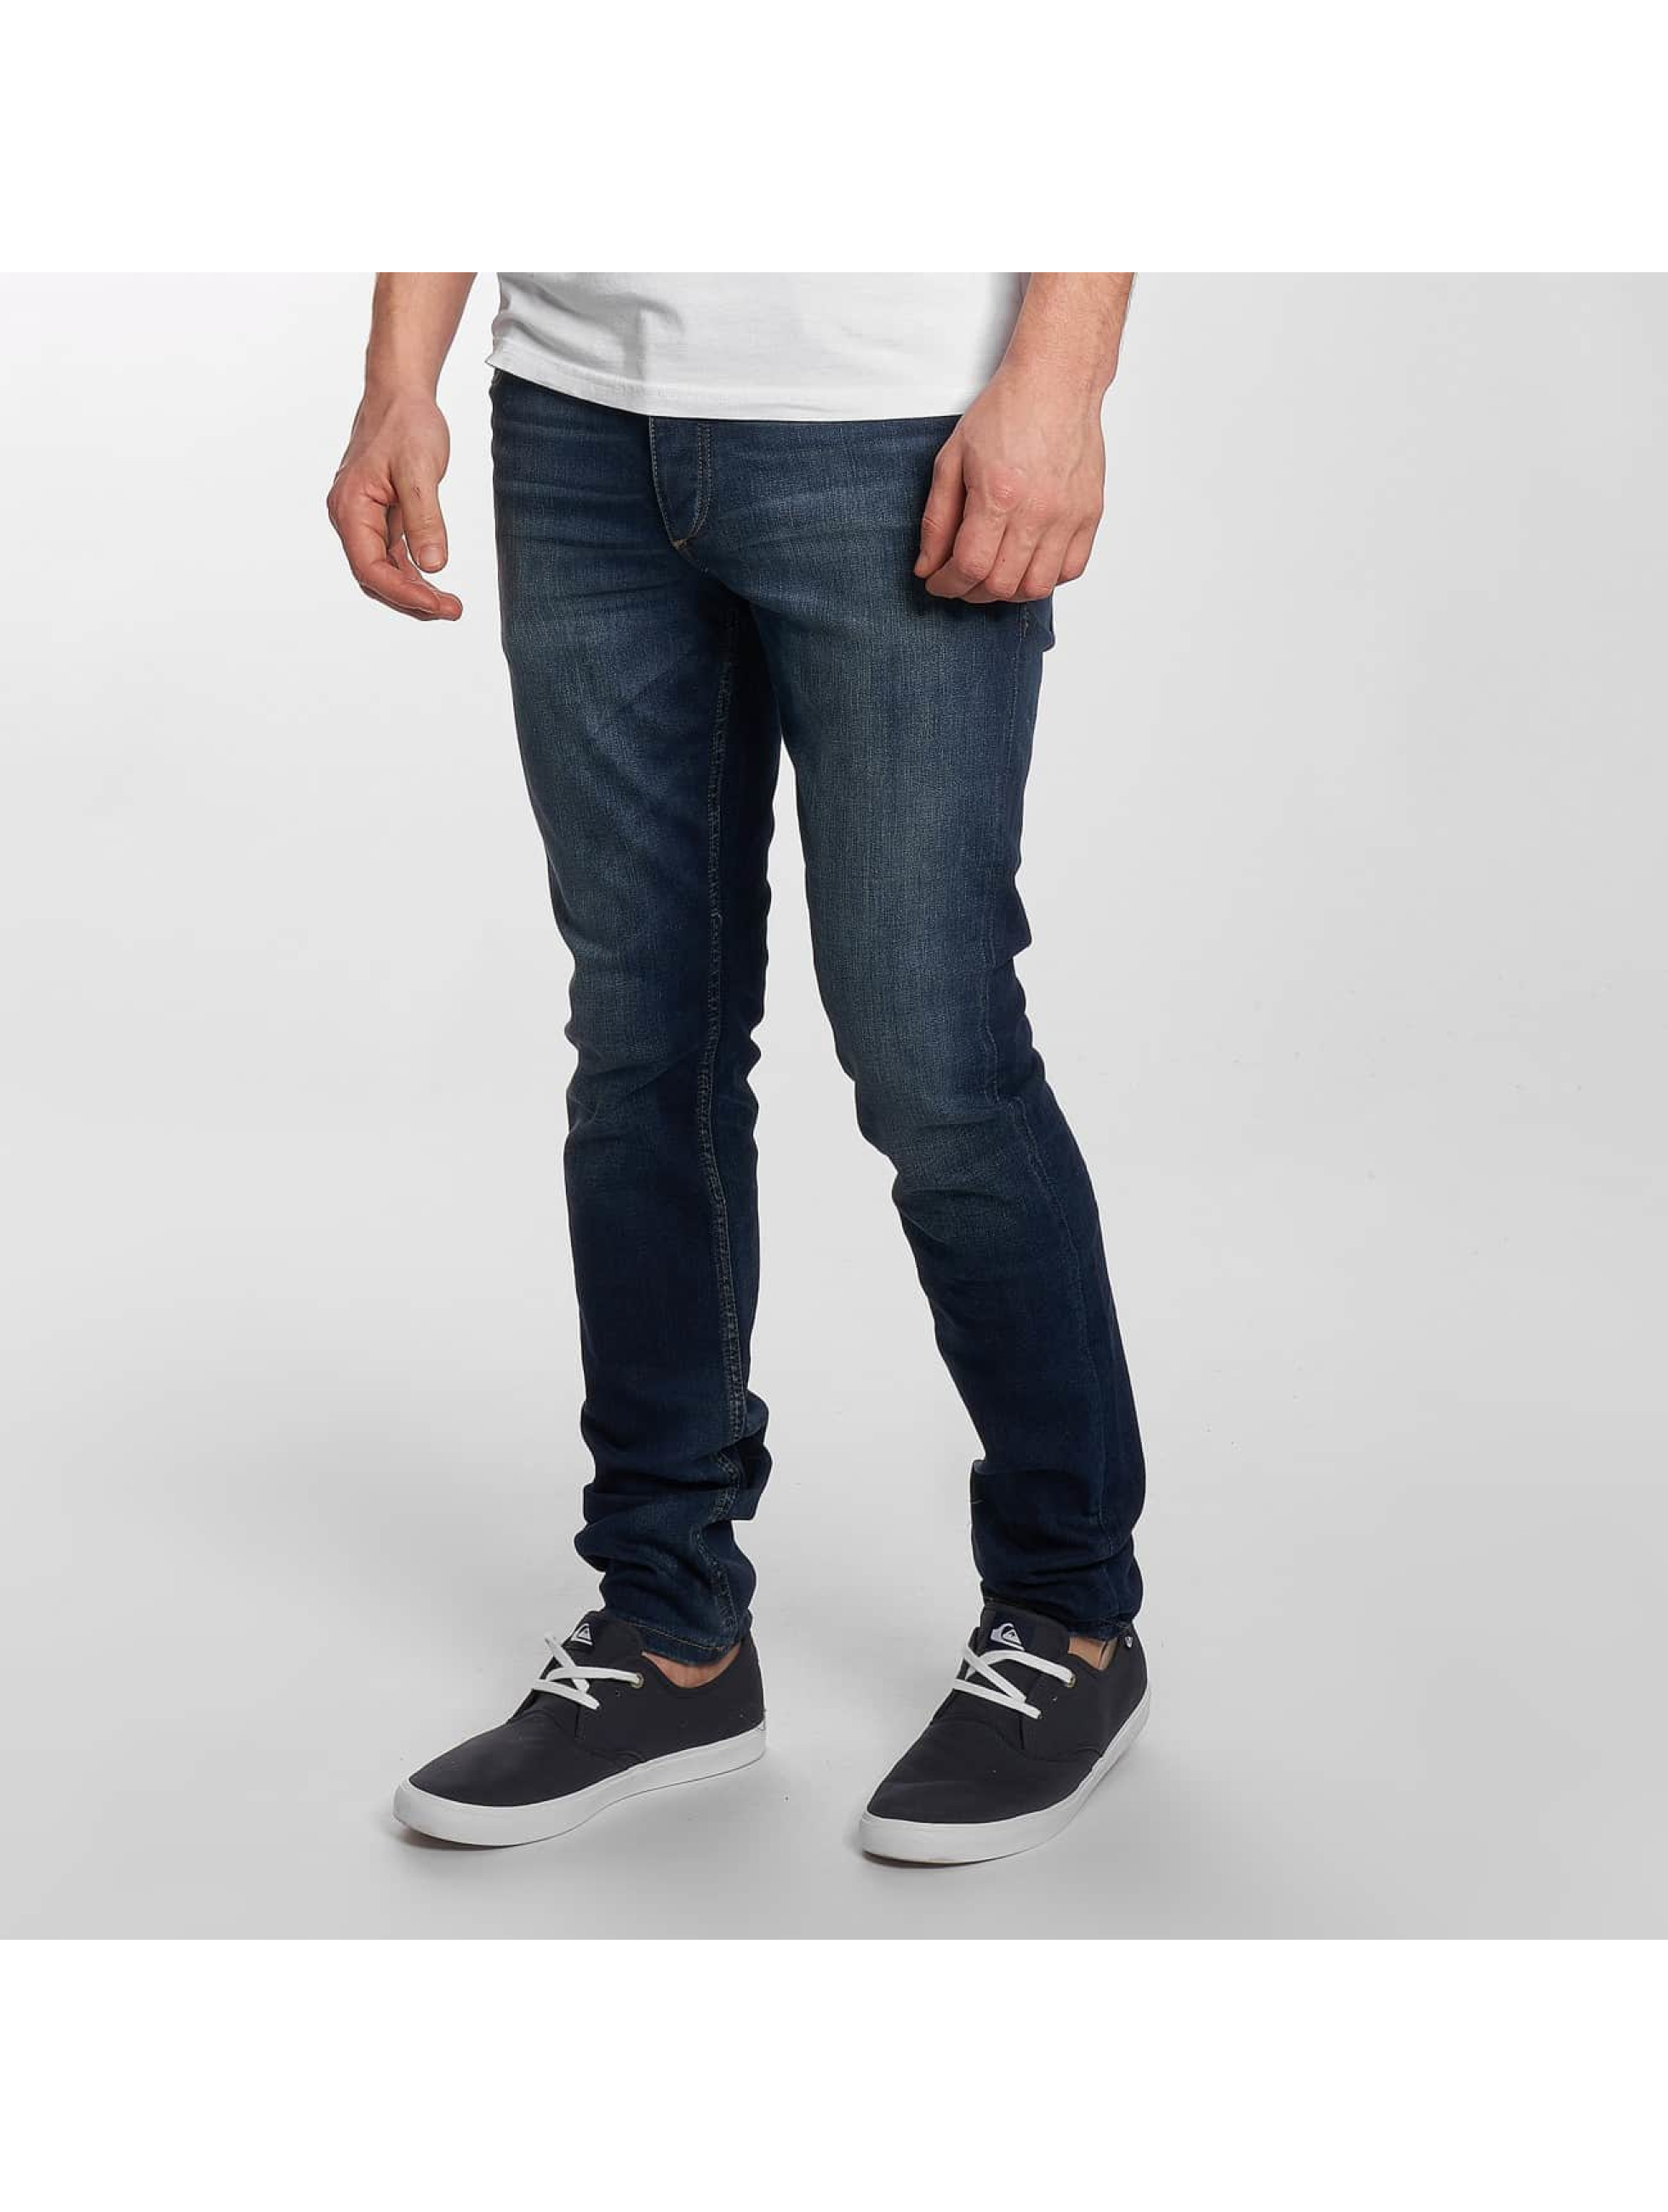 Jack & Jones Slim Fit Jeans jjTIM blau